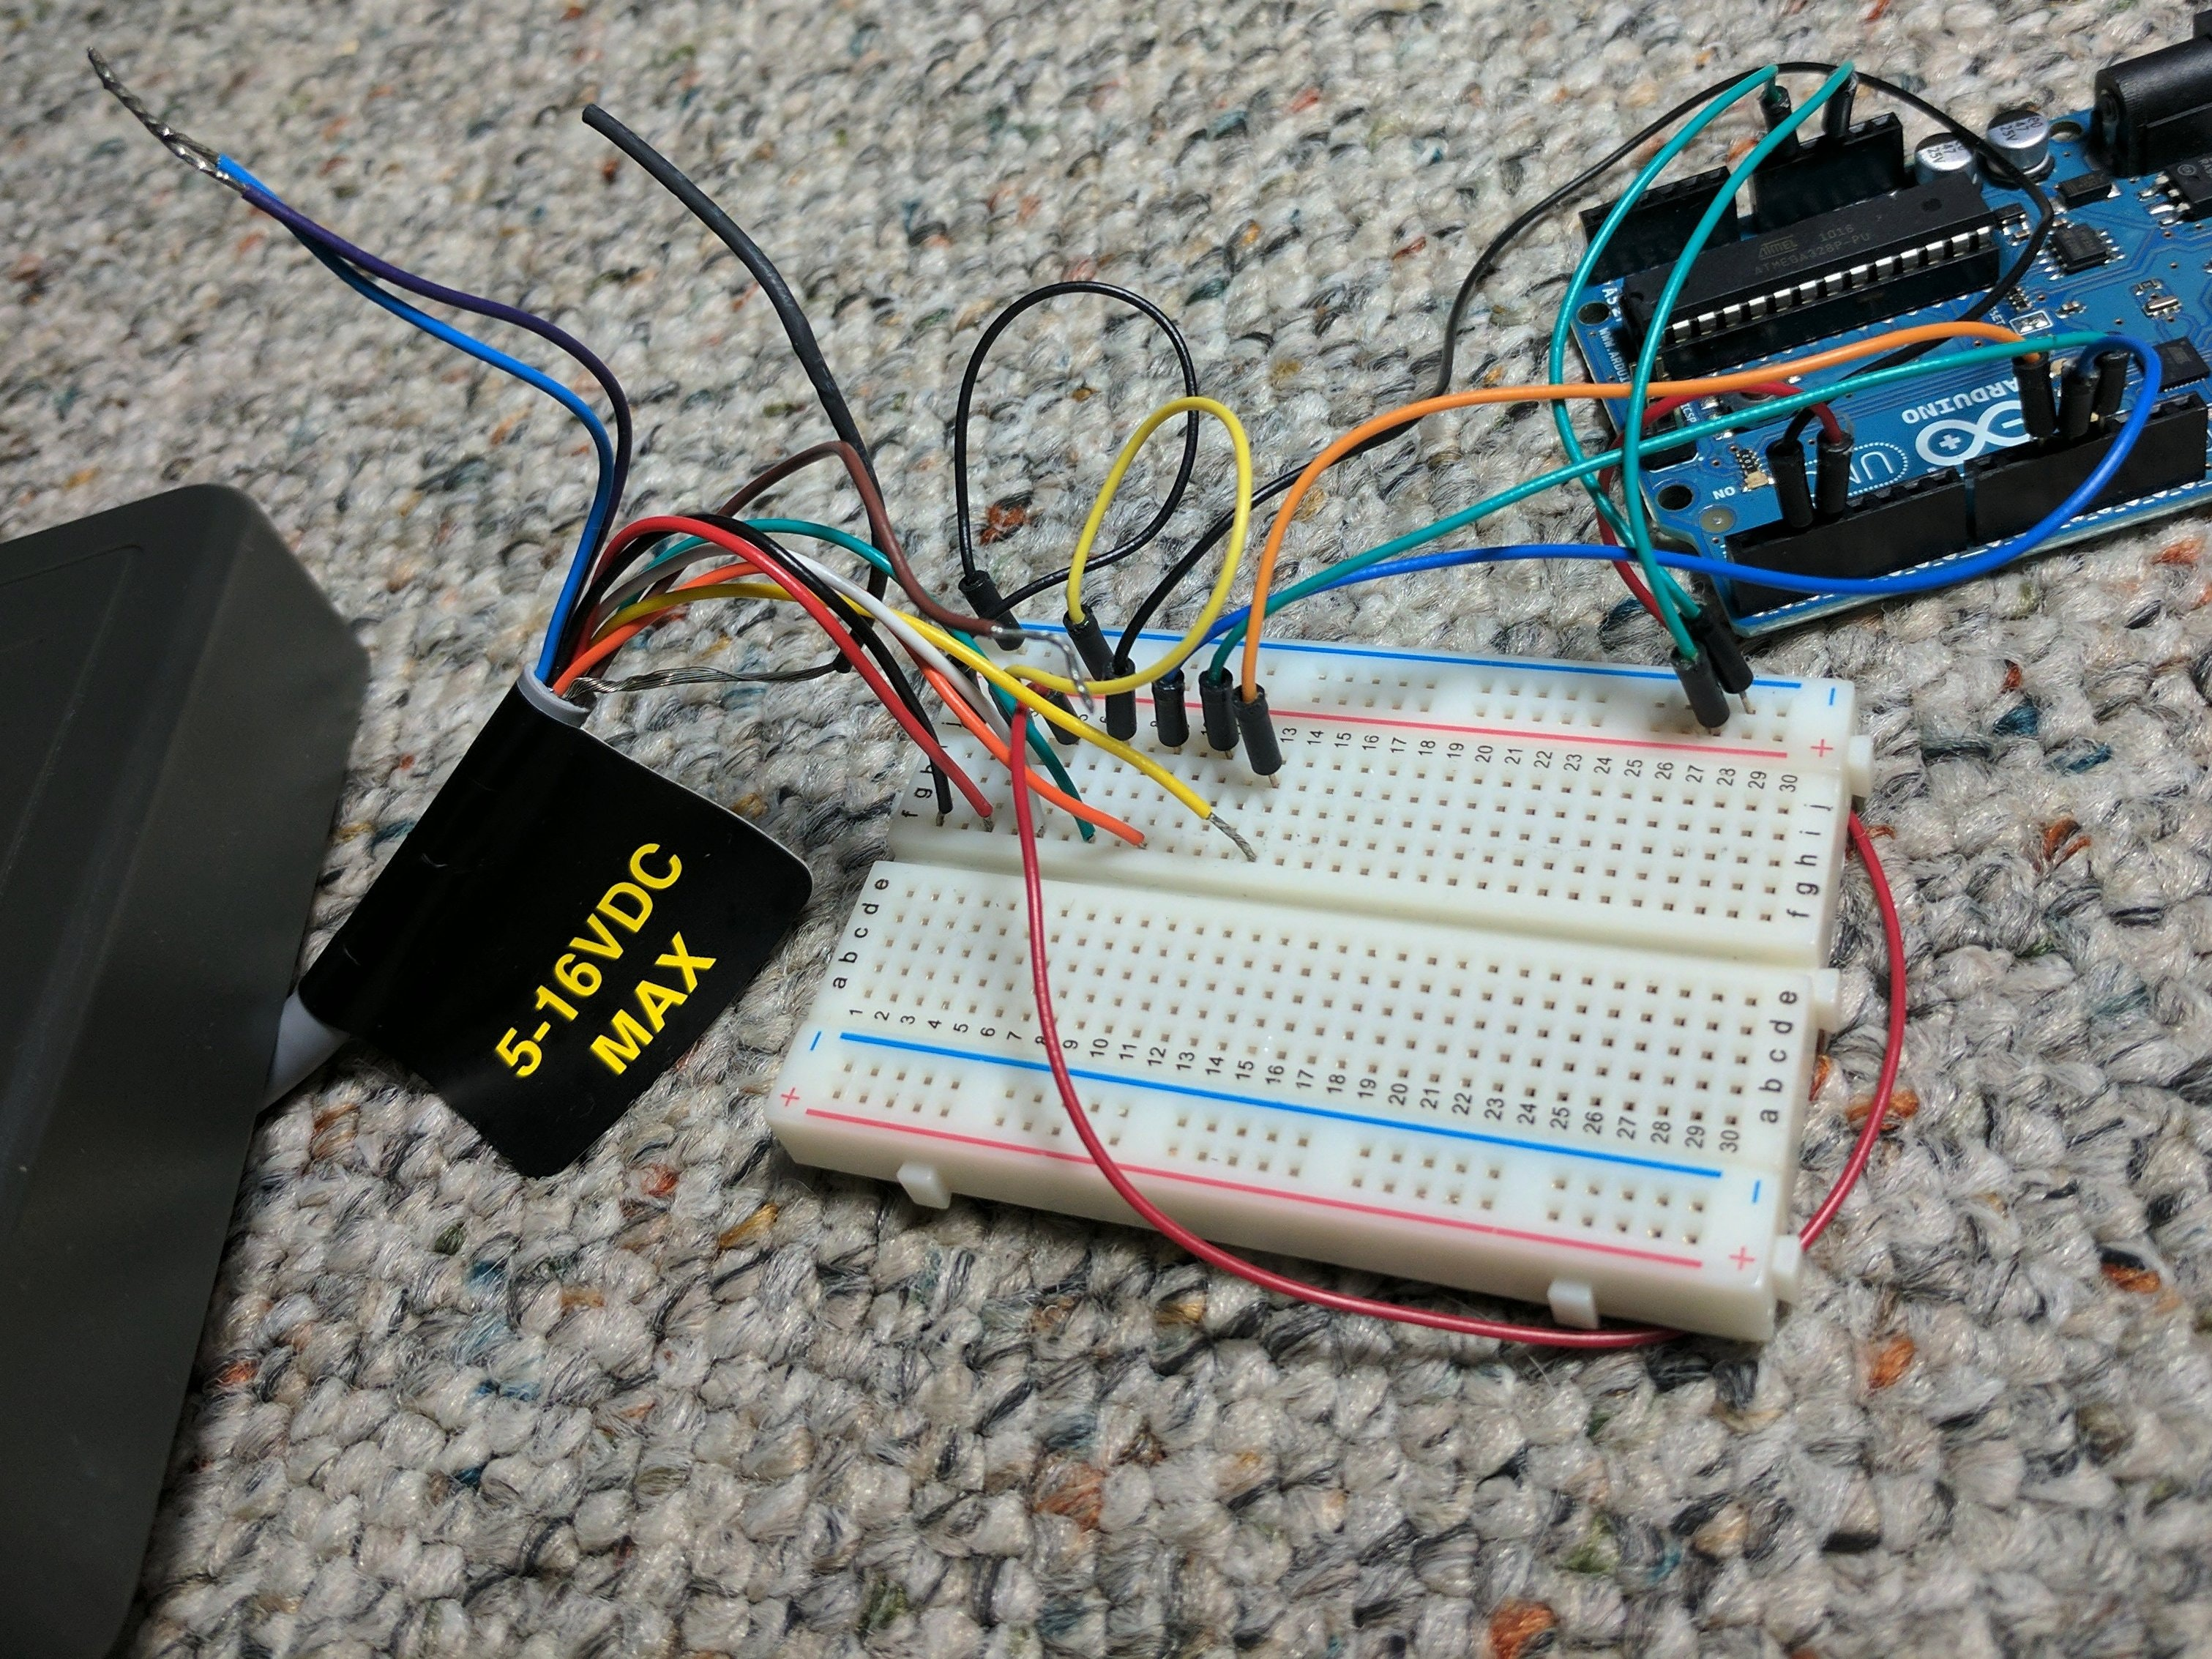 tmp_image_0?auto=compress%2Cformat&w=400&h=300&fit=min hid prox rfid to arduino arduino project hub hid card reader wiring diagram at bayanpartner.co